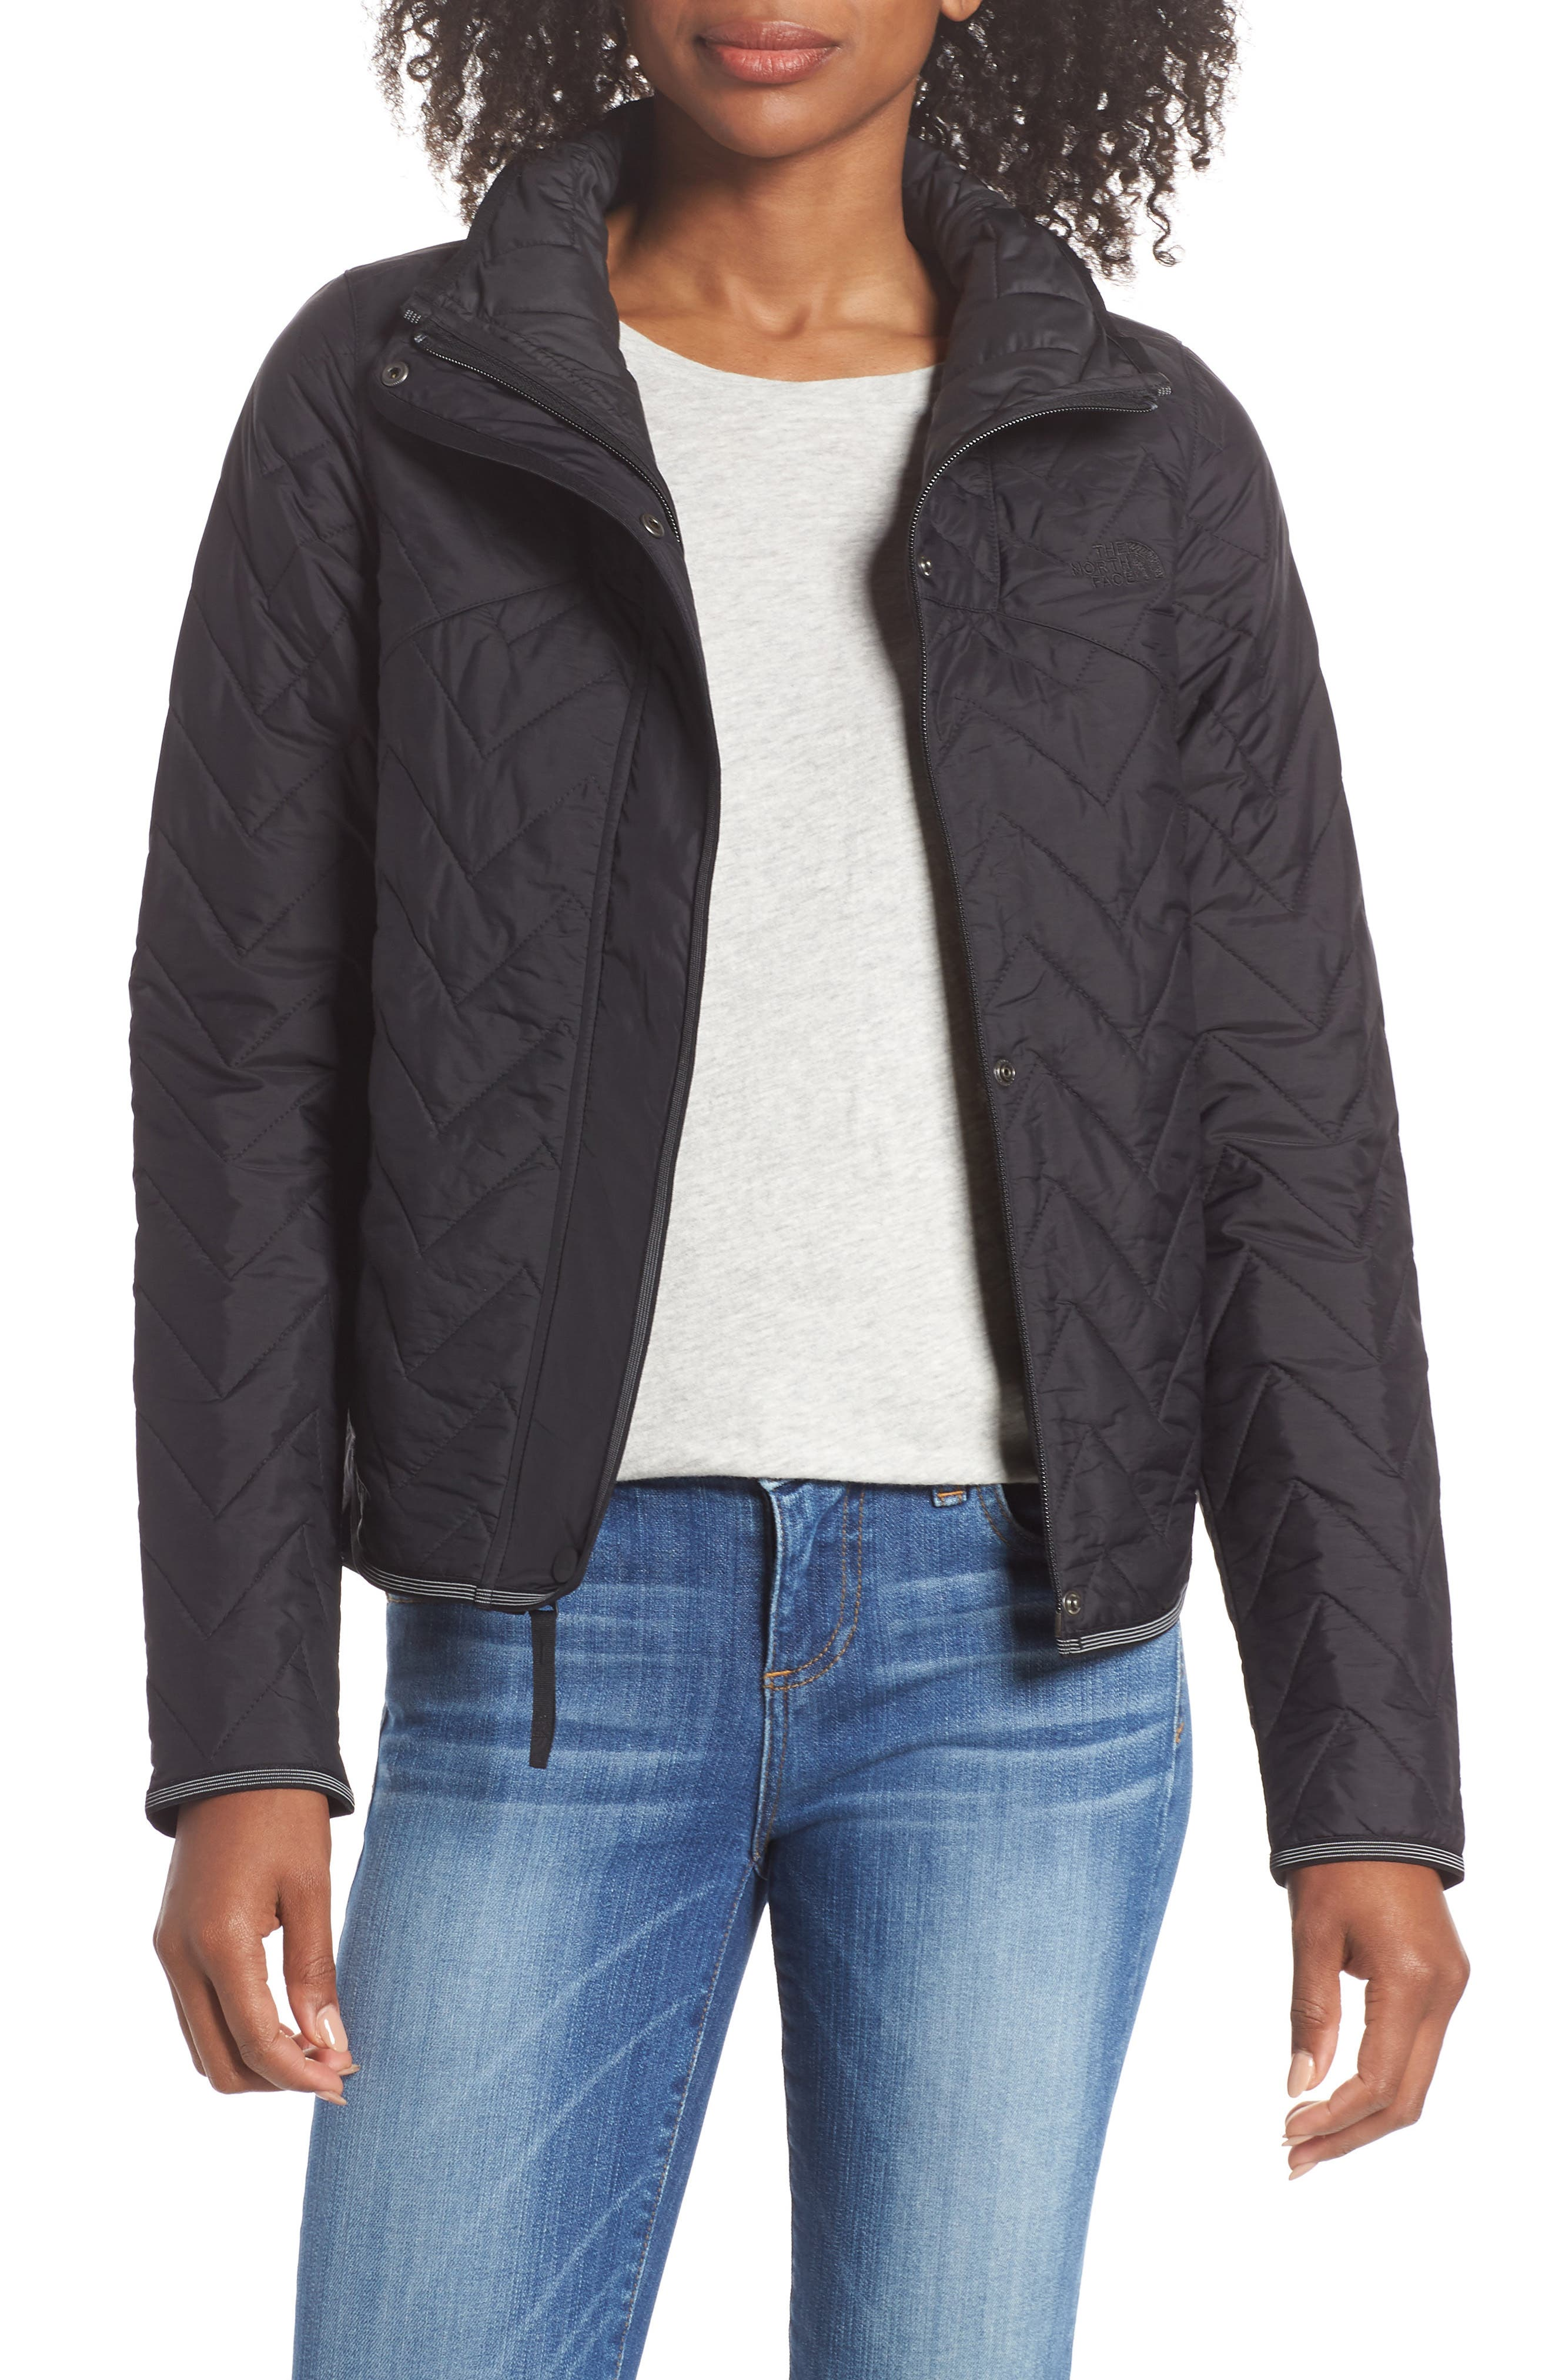 Westborough Insulated Jacket,                             Main thumbnail 1, color,                             001